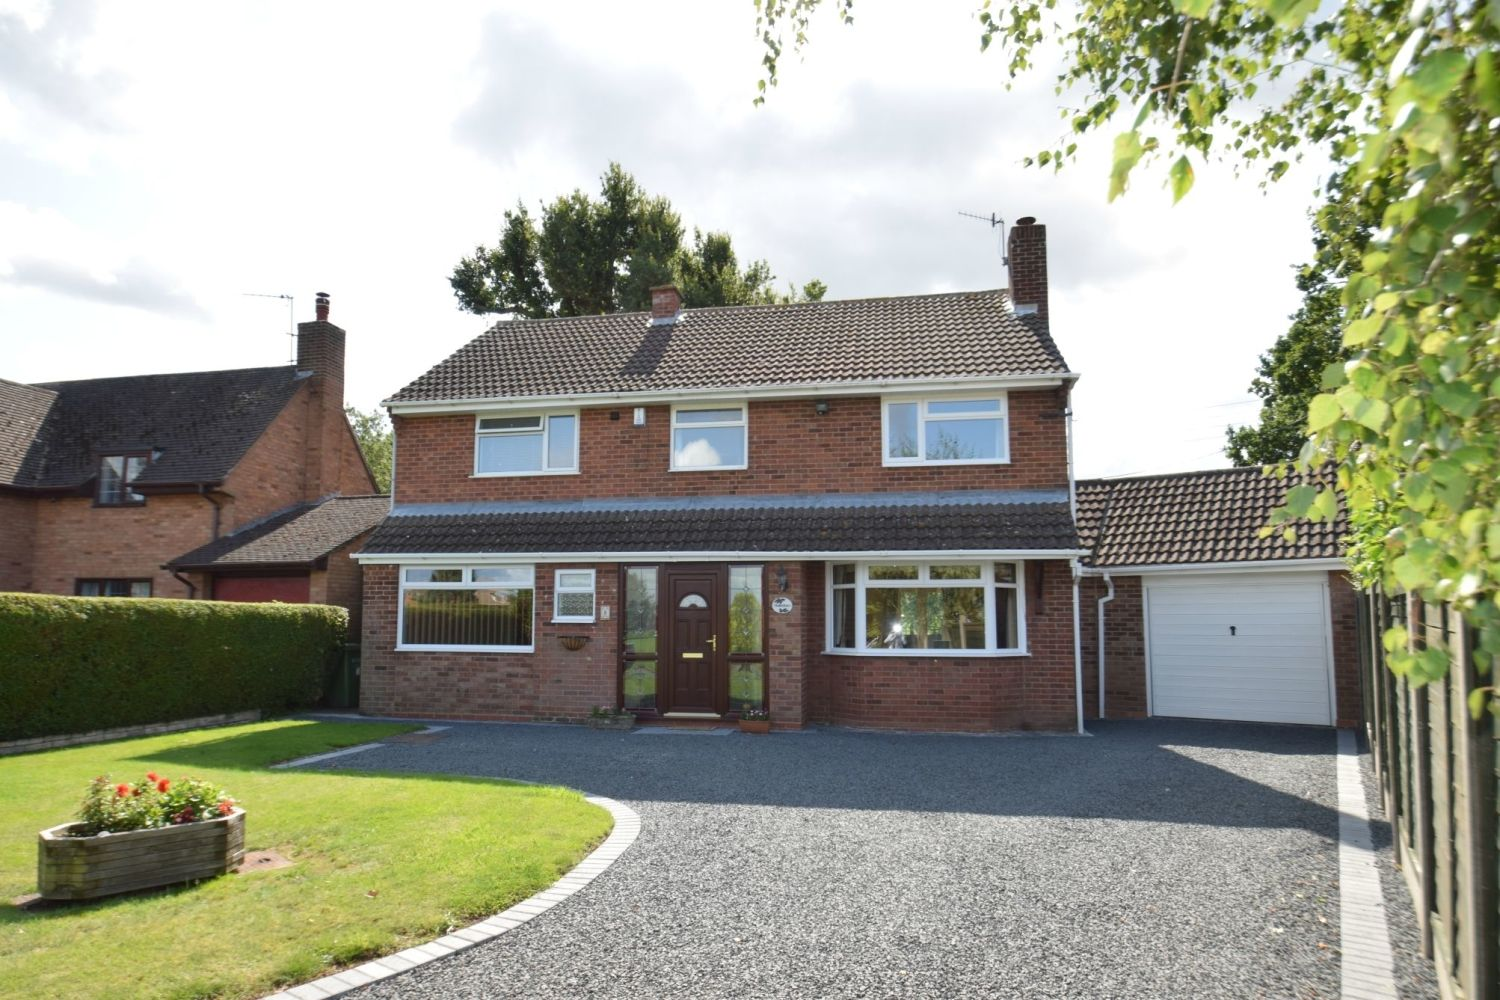 4 bed detached for sale in St. Richards Close, Wychbold 1